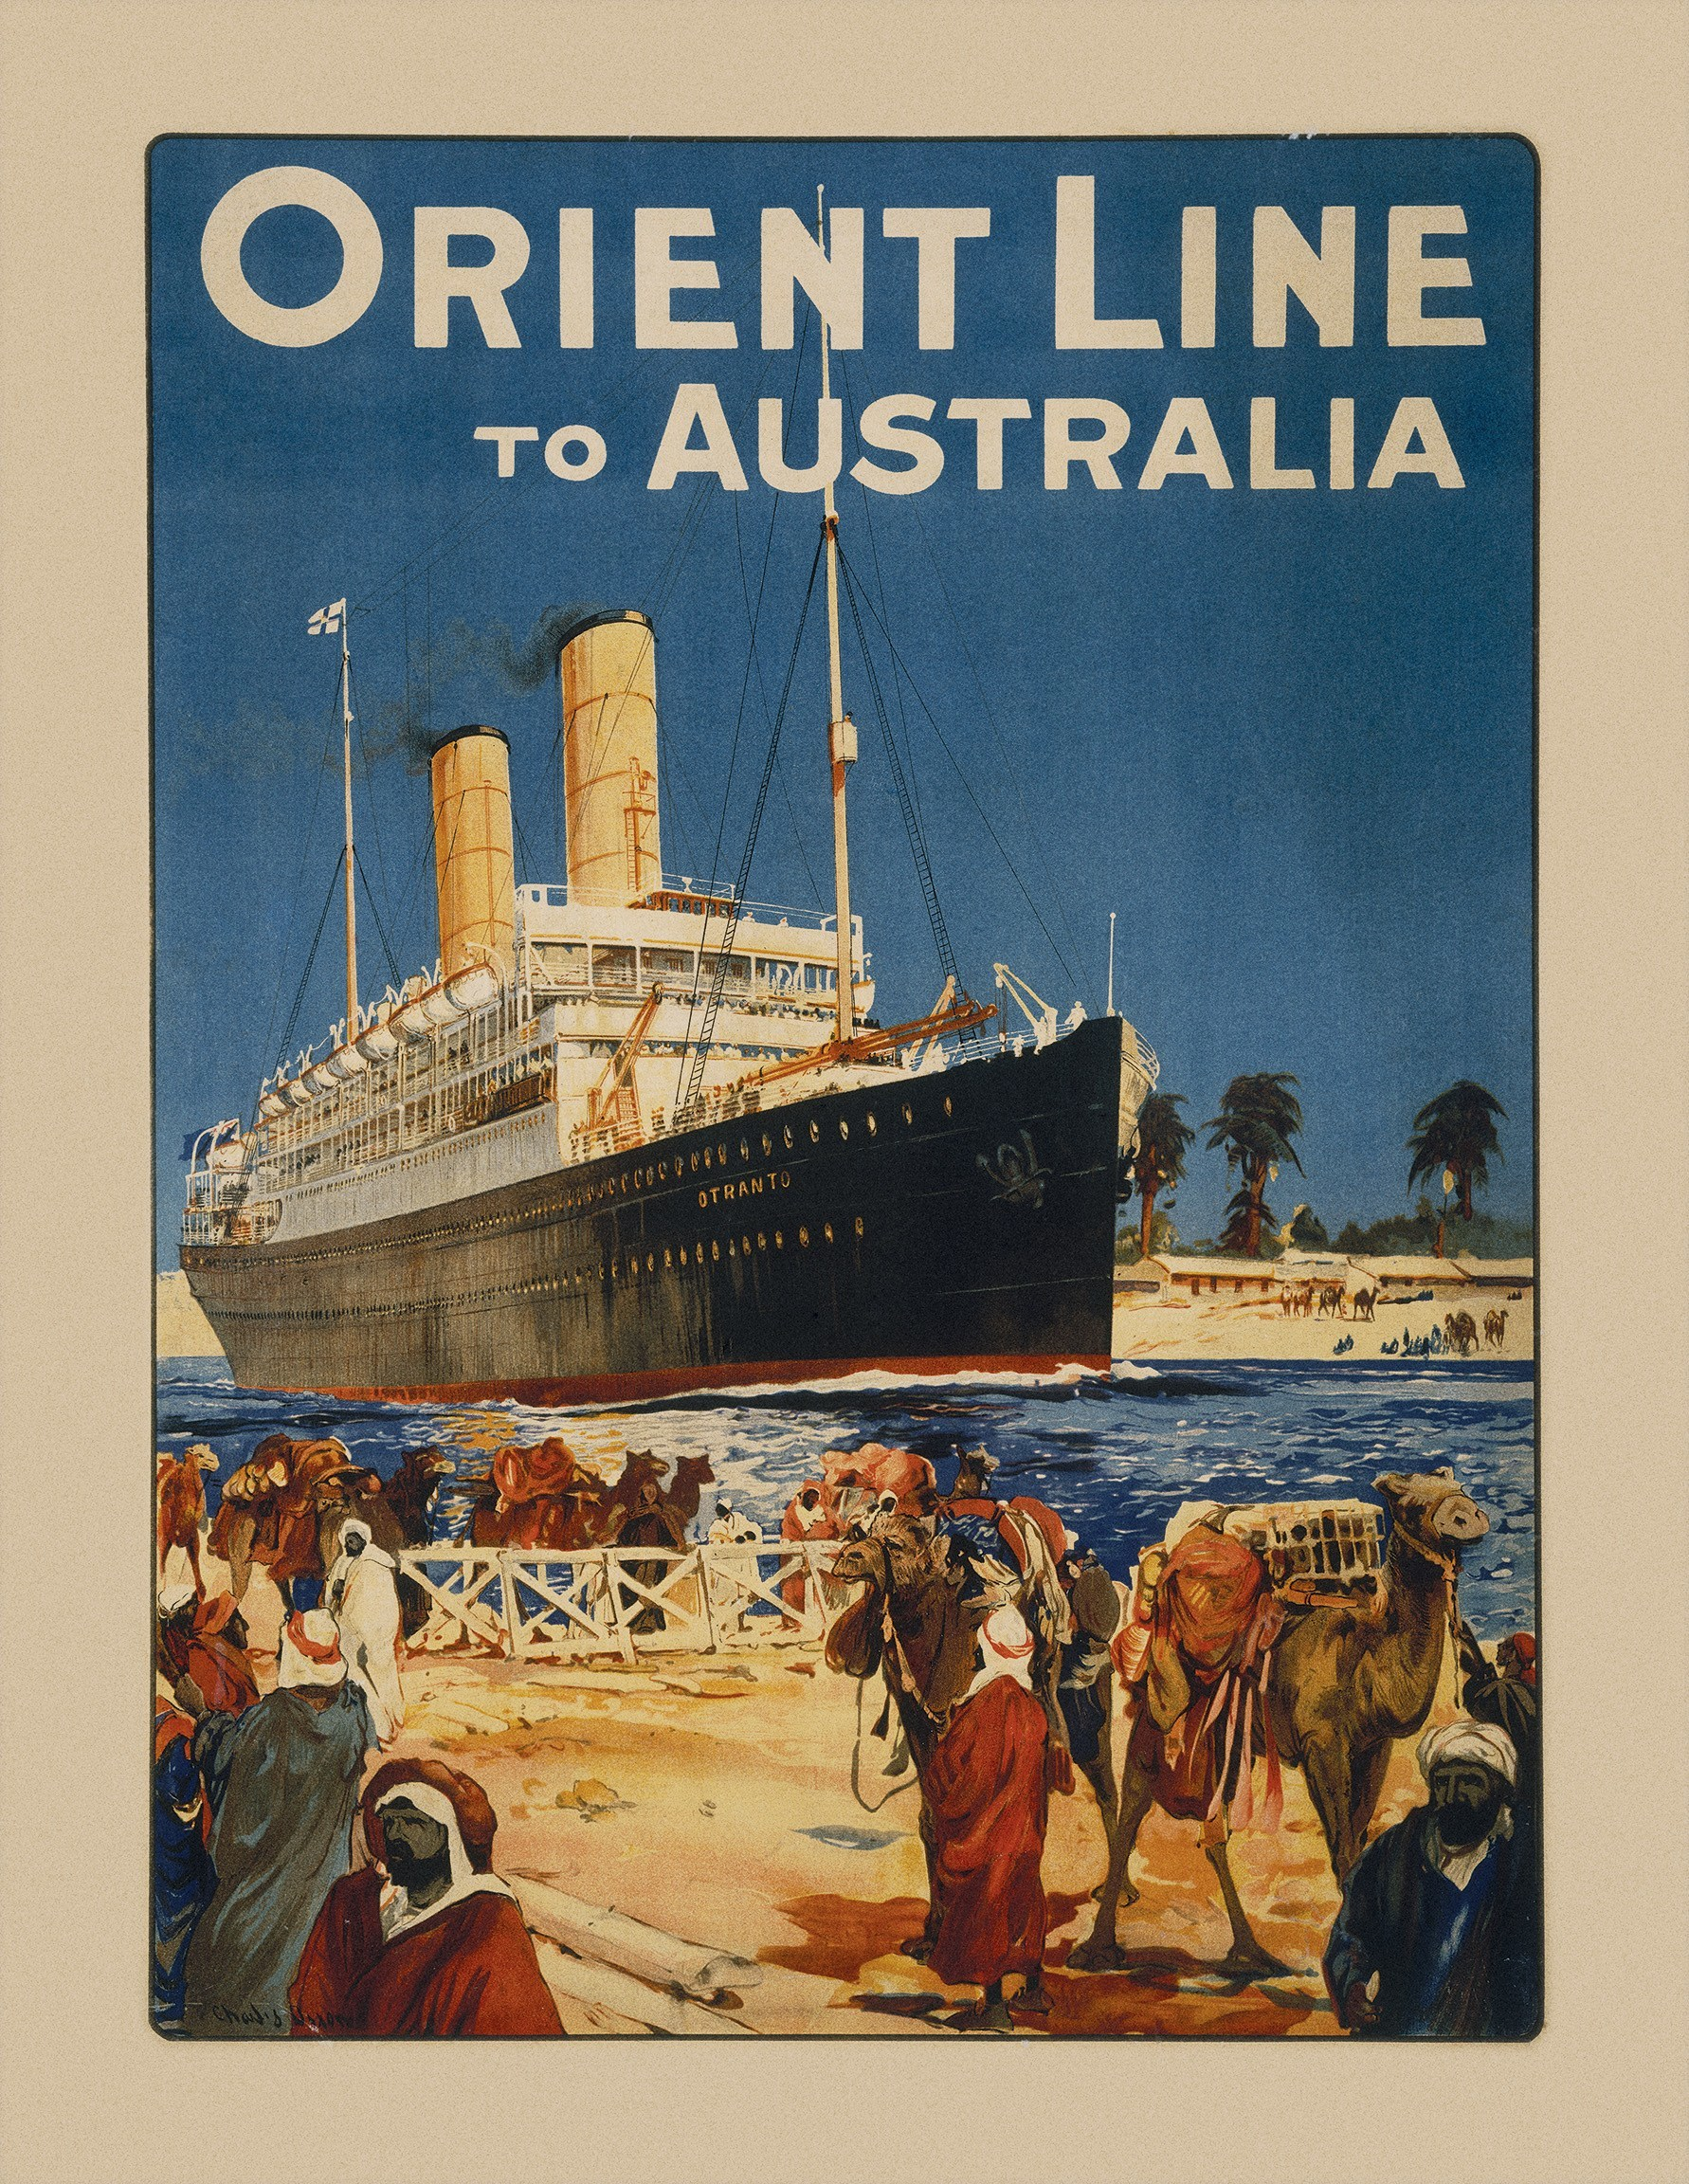 poster for Orient Line service to Australia featuring Otranto in the Suez Canal, lithograph, c.1912